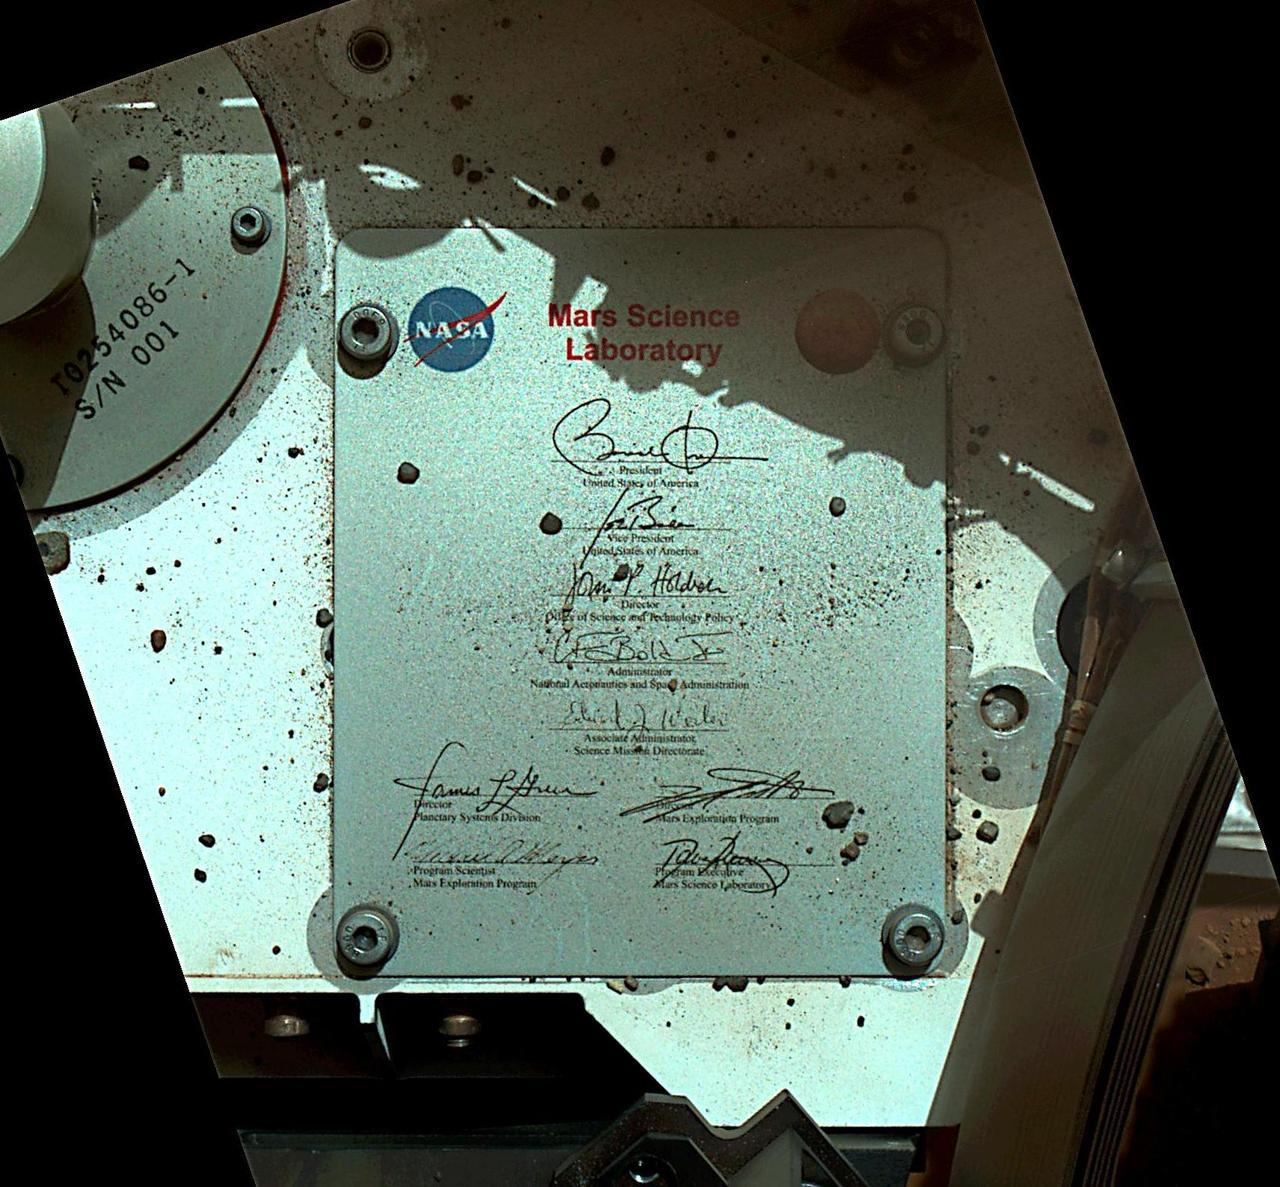 itsfullofstars:  President's Signature Onboard Curiosity  This view of Curiosity's deck shows a plaque bearing several signatures of US officials, including that of President Obama and Vice President Biden. The image was taken by the rover's Mars Hand Lens Imager (MAHLI) during the rover's 44th Martian day, or sol, on Mars (Sept. 19, 2012). The plaque is located on the front left side of the rover's deck. The rectangular plaque is made of anodized aluminum and measures 3.94 inches (100 millimeters) tall by 3.23 inches (82 millimeters) wide. The plaque was affixed to the rover's deck with four bolts. Similar plaques with signatures — including those of the sitting president and vice-president — adorn the lander platforms for NASA's Spirit and Opportunity rovers, which landed on Mars in January of 2004. An image from Spirit's plaque can be found at PIA05034. The main purpose of Curiosity's MAHLI camera is to acquire close-up, high-resolution views of rocks and soil at the rover's Gale Crater field site. The camera is capable of focusing on any target at distances of about 0.8 inch (2.1 centimeters) to infinity, providing versatility for other uses, such as views of the rover itself from different angles.